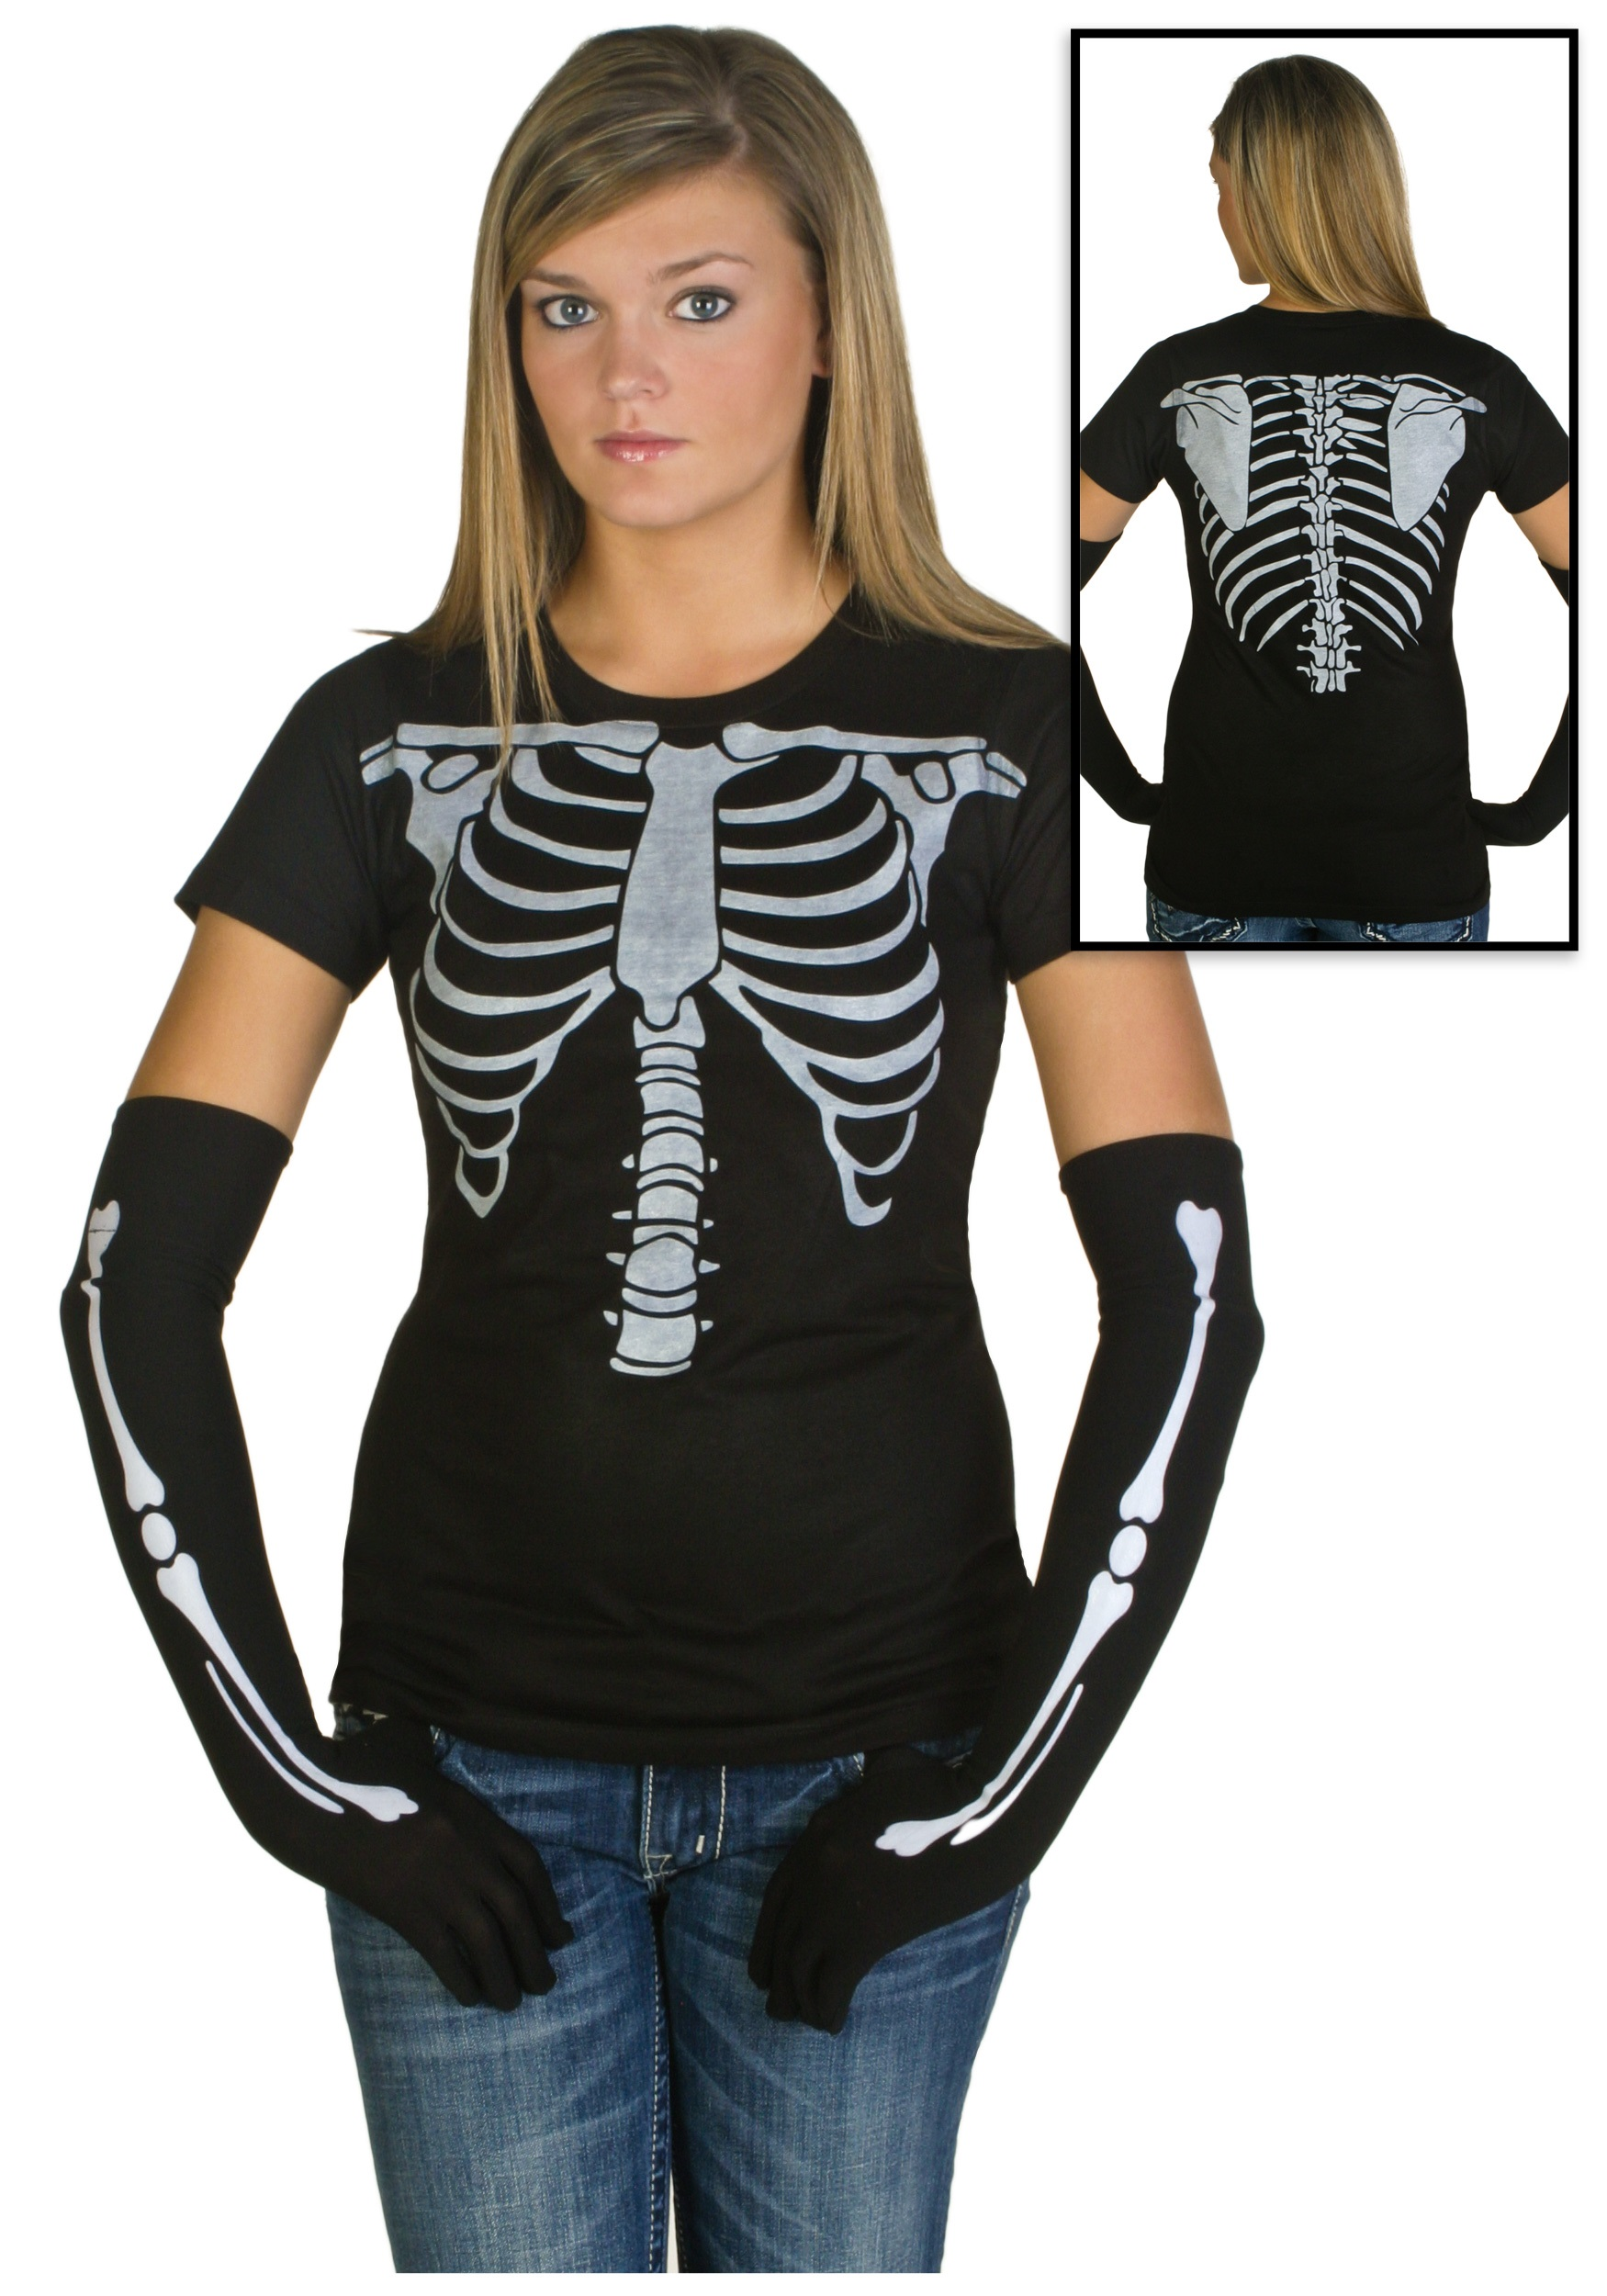 Womens skeleton costume t shirt halloween costumes for Costume t shirts online